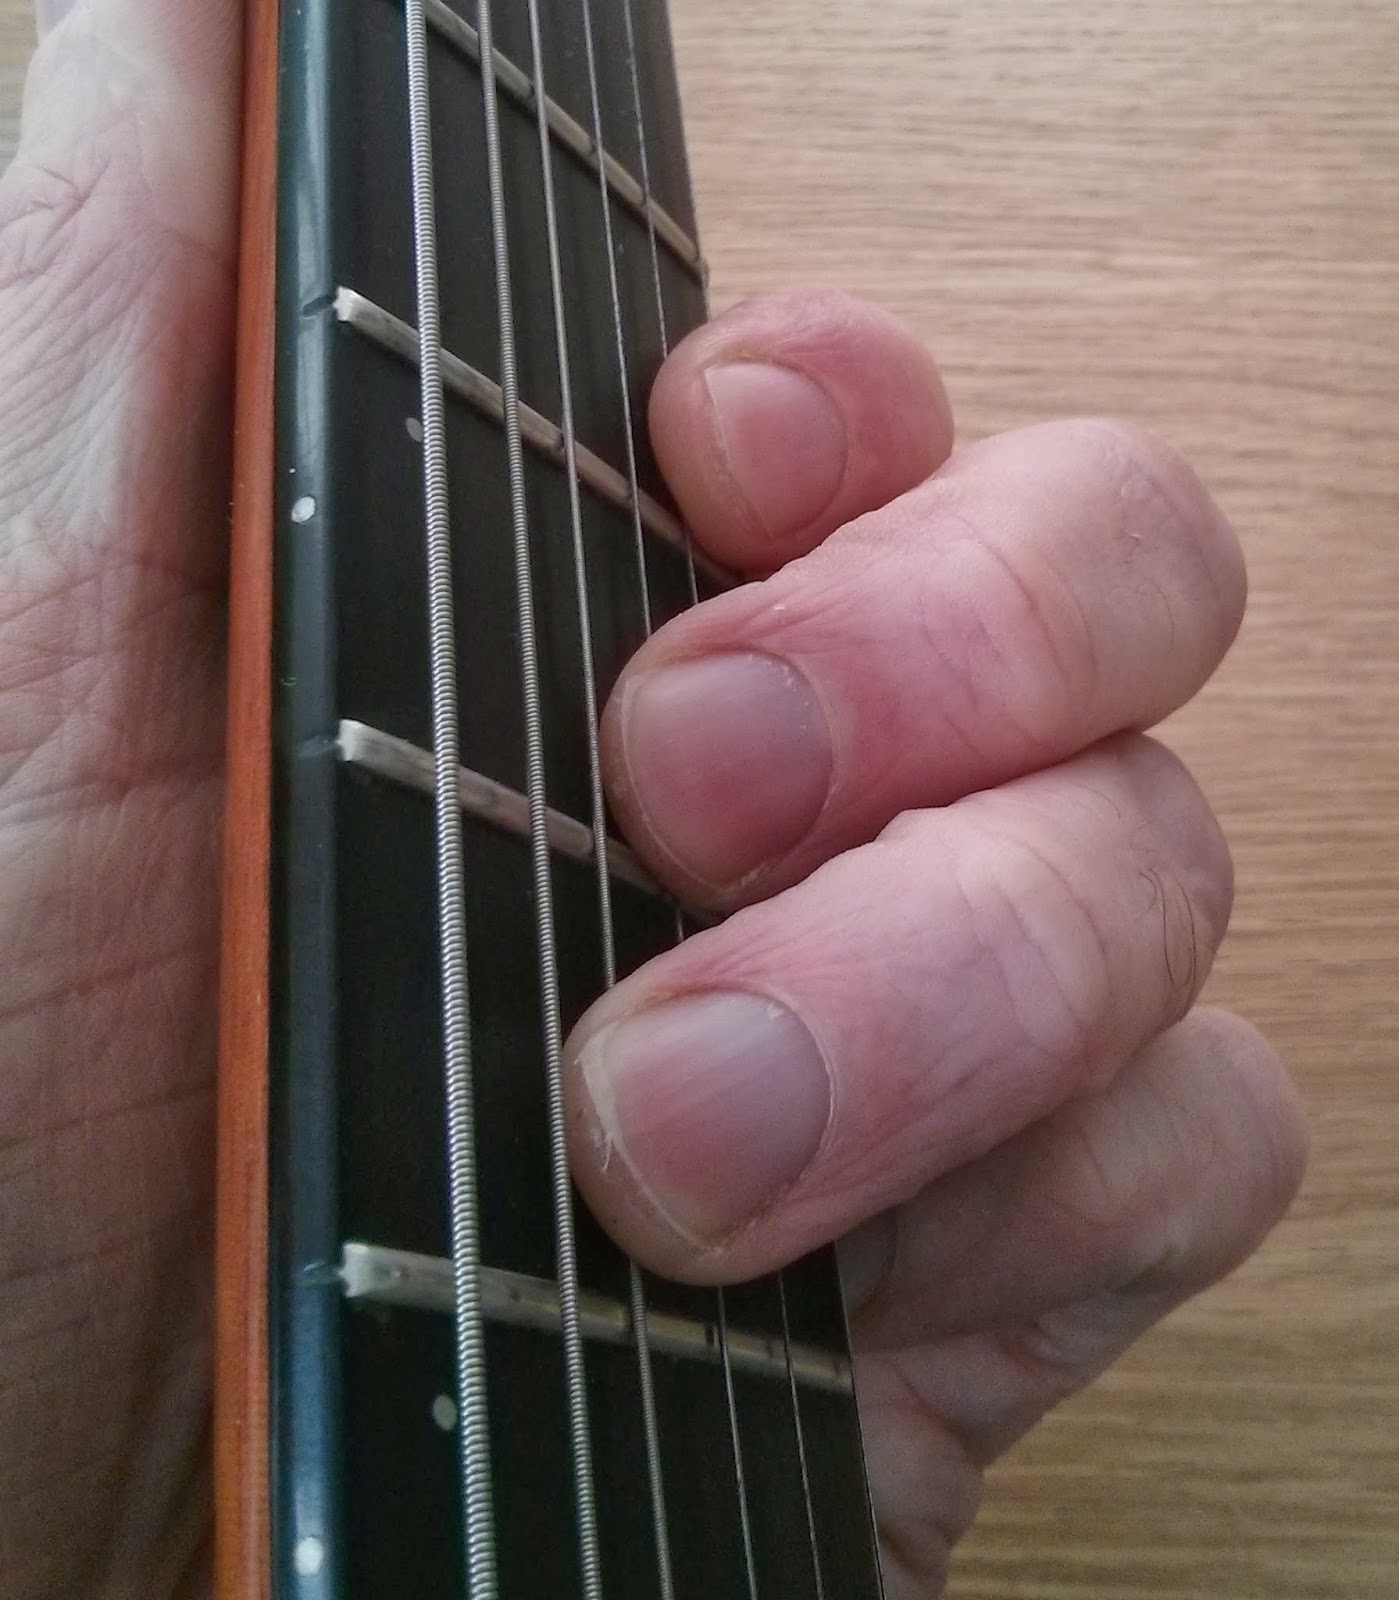 A New Guitar Chord Every Day G Guitar Chord Ab Guitar Chord